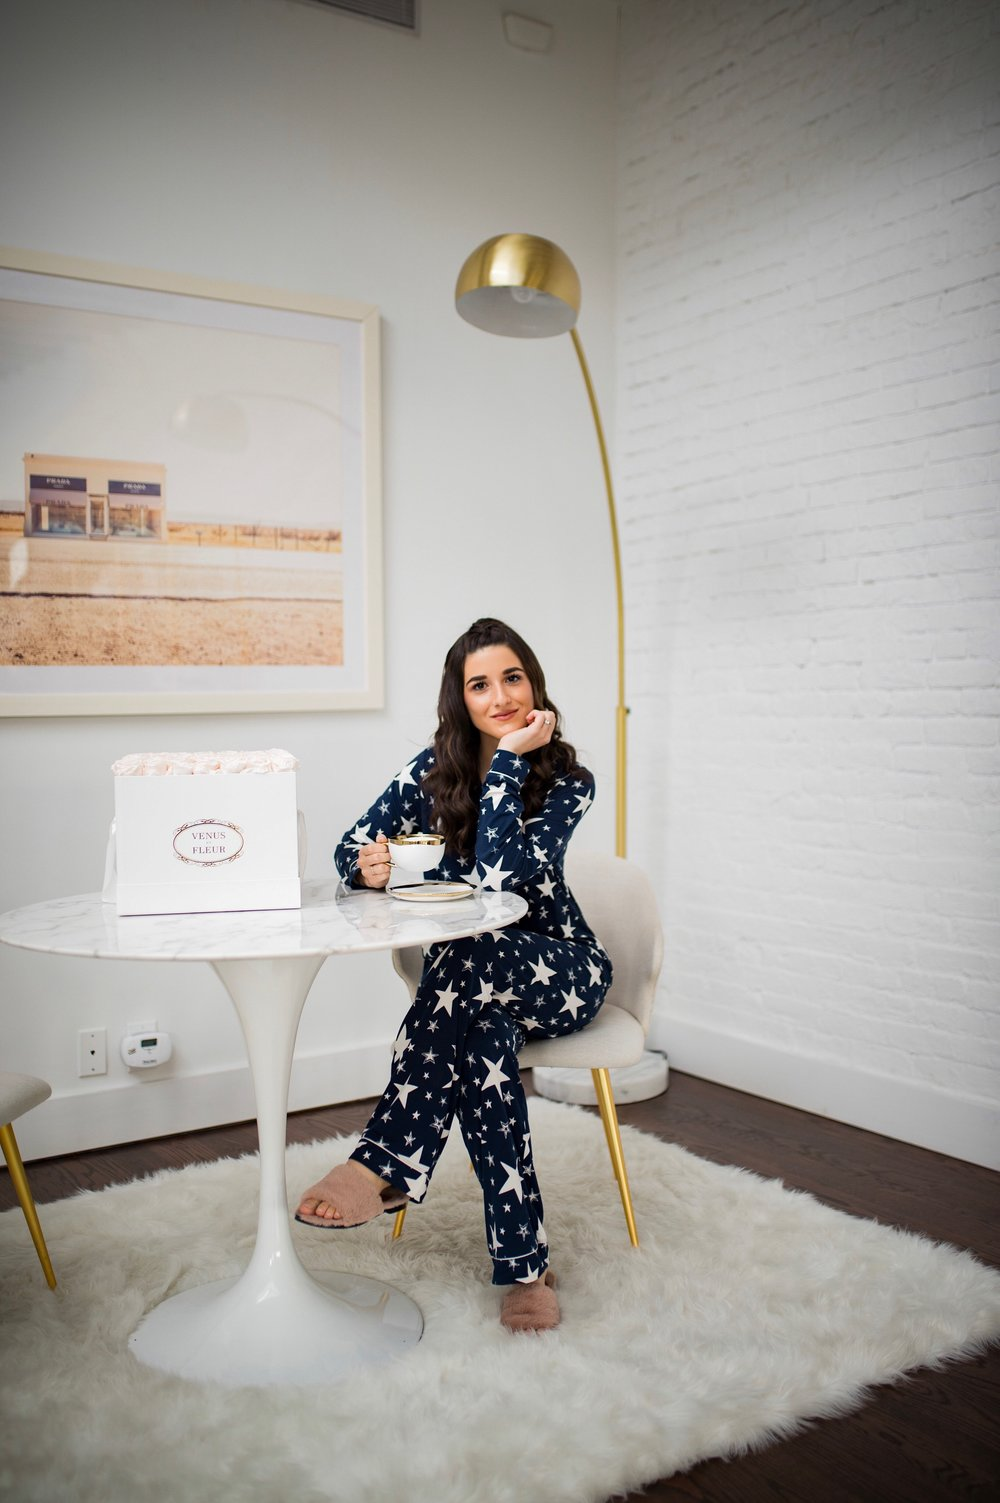 5 Tips For Becoming A Morning Person Navy Star Pajamas Esther Santer Fashion Blog NYC Street Style Blogger Outfit OOTD Trendy Shopping PJs Holiday ASOS Cute Wear Interior Beautiful Home Penthouse Wayfair Circle Mirror Venus Et Fleur Gold Lamp Marble.jpg